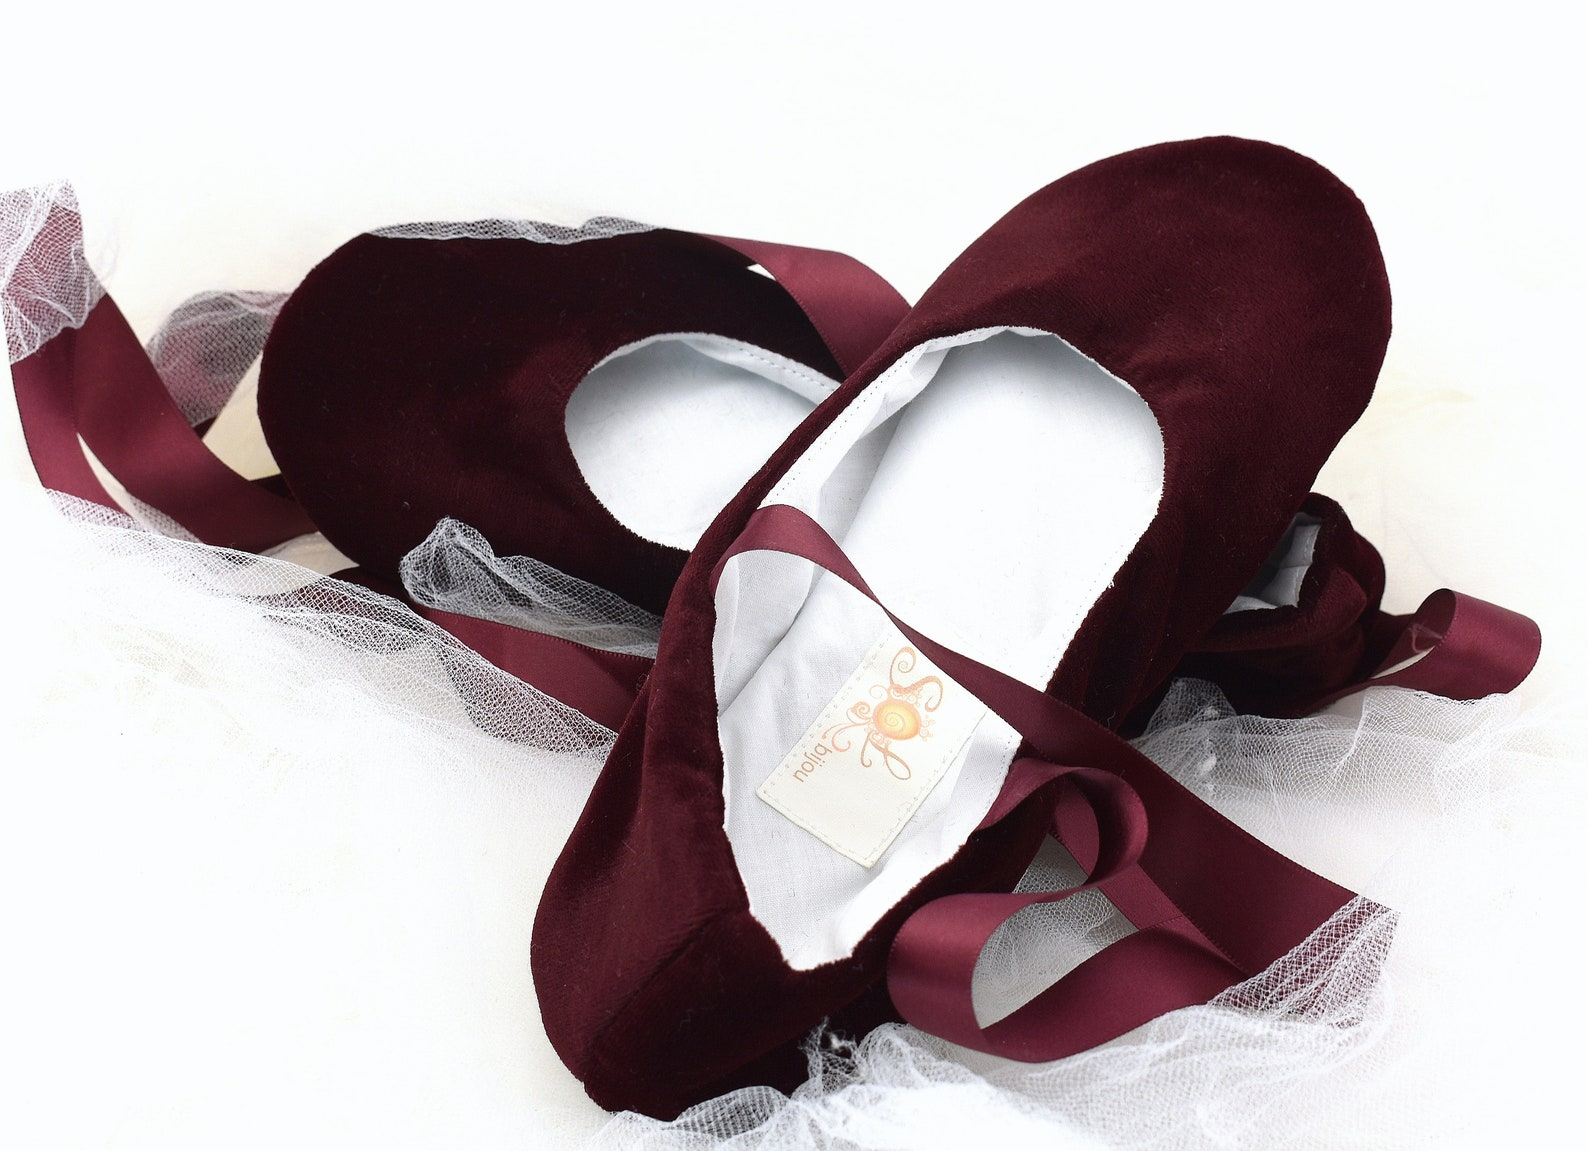 burgundy suede bridal shoes wedding ballet flats with satin ties slippers flats